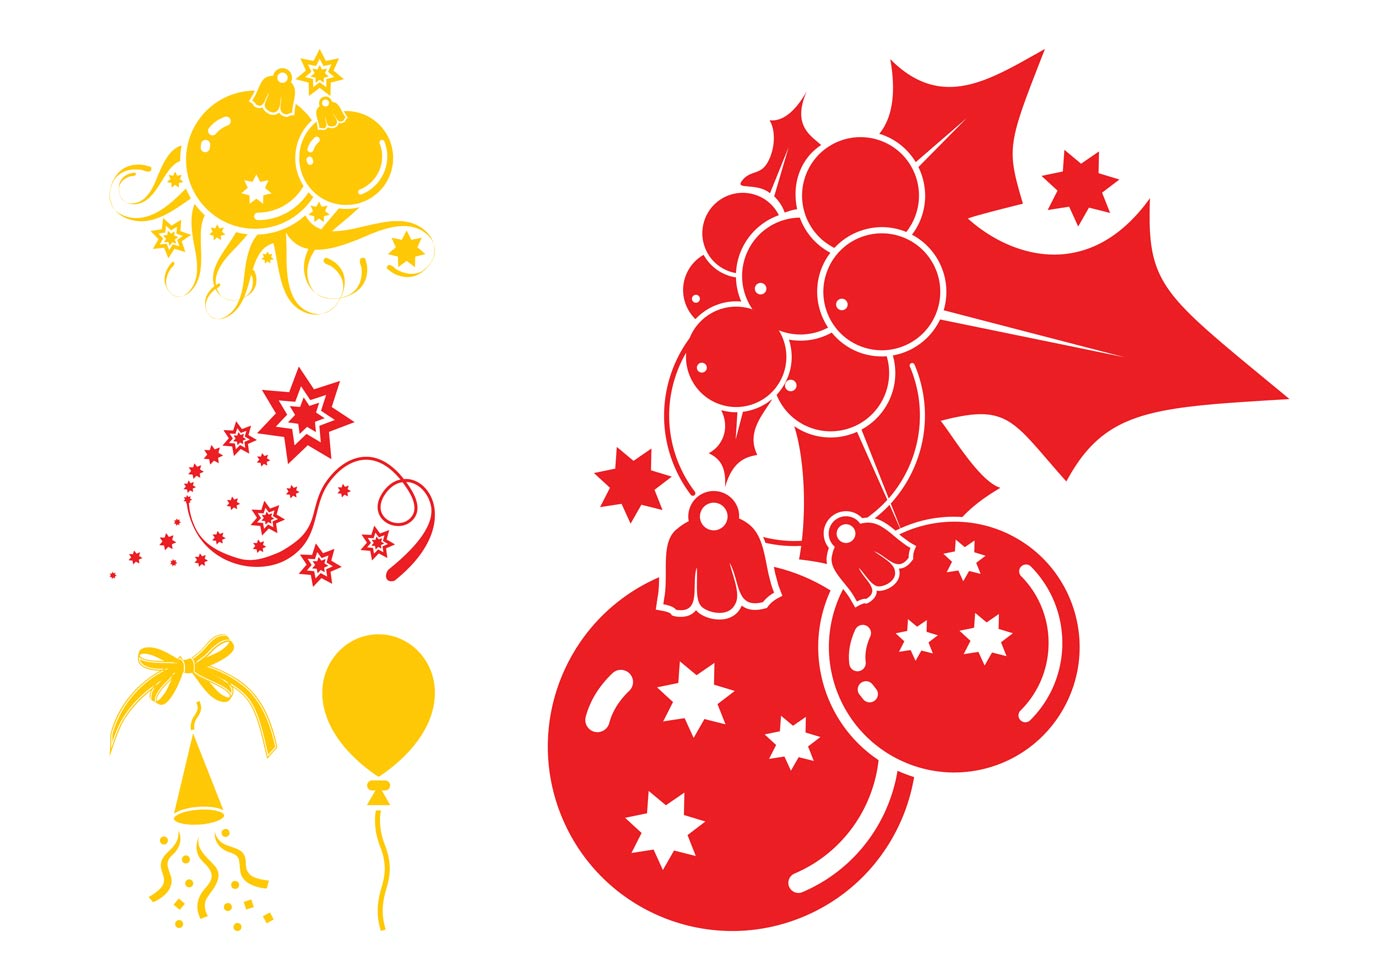 Christmas Decorations Graphics - Download Free Vector Art ...